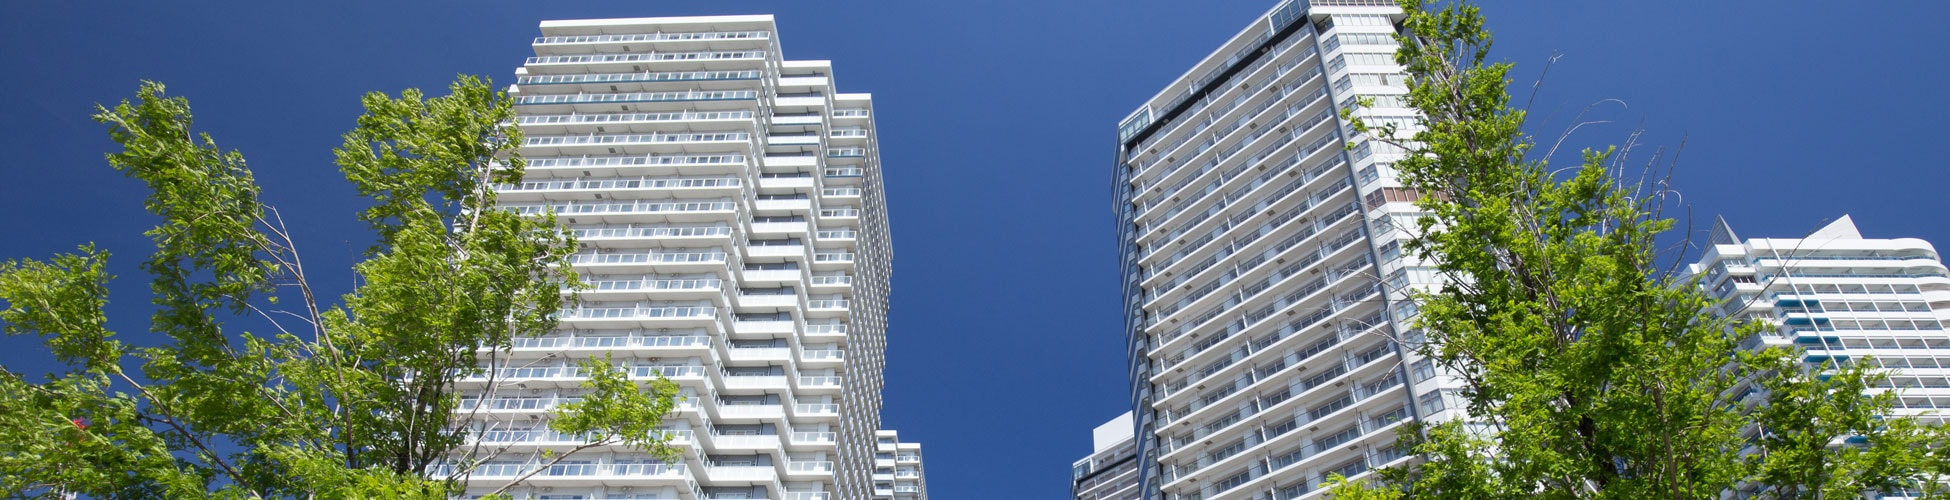 High-Rise Apartments and Street Trees of Green - Commercial Real Estate law